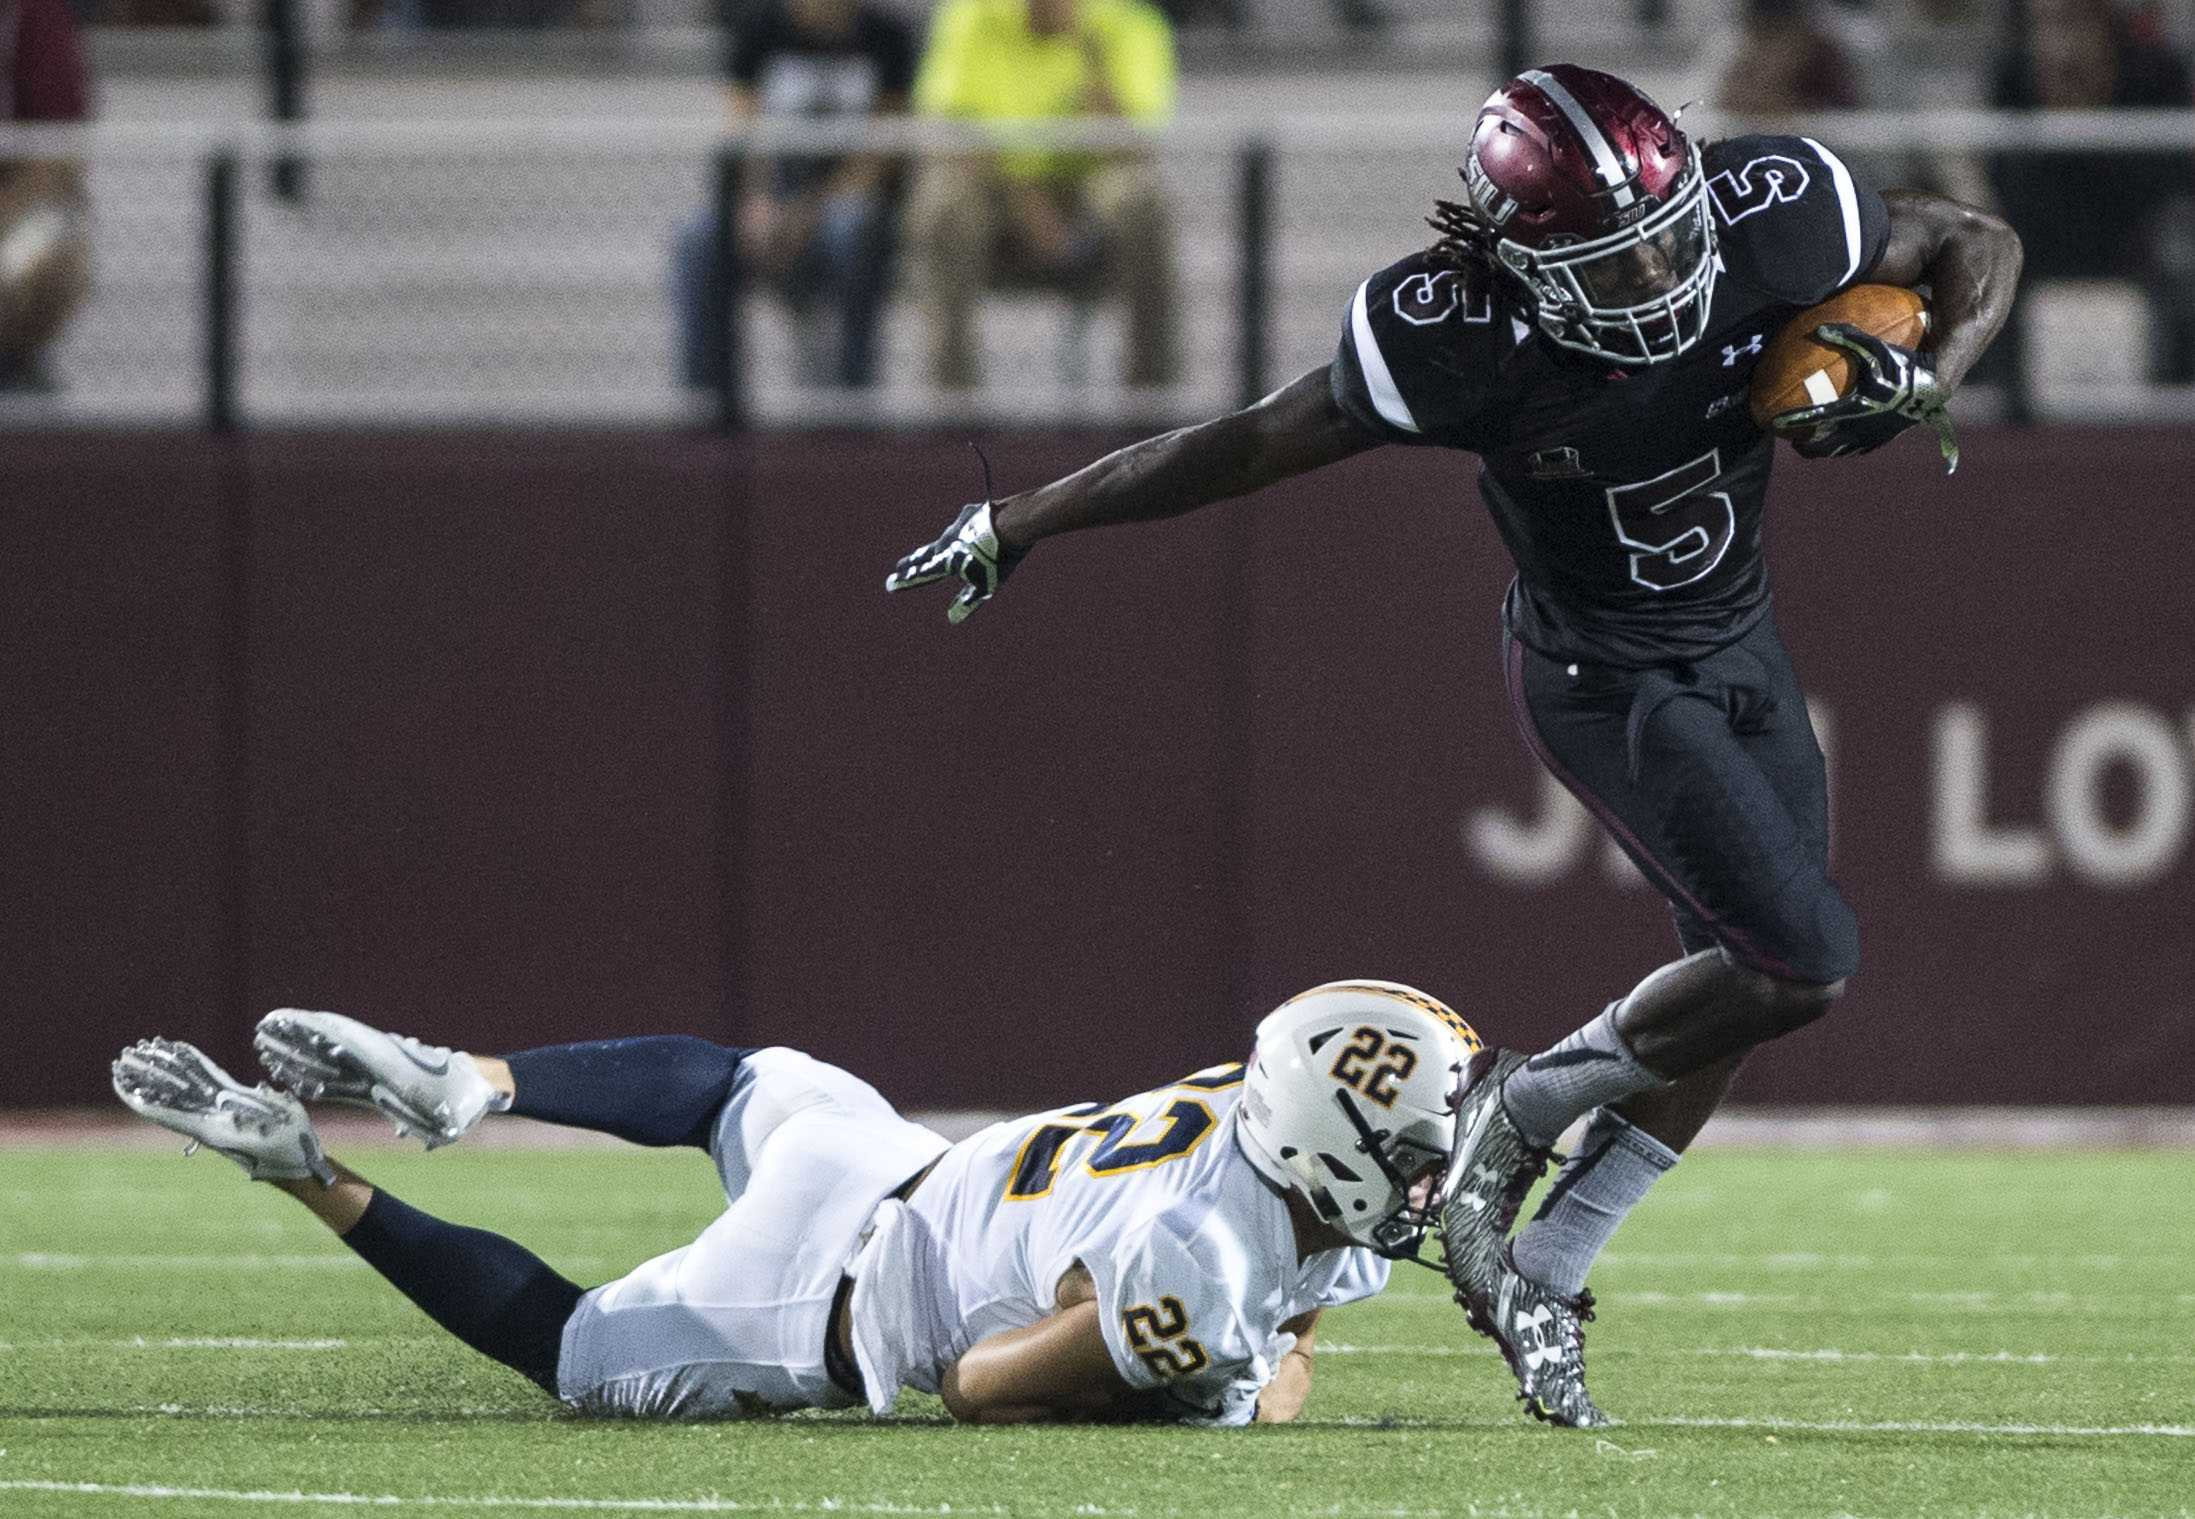 SIU sophomore running back Daquan Isom (5) breaks past Murray State junior defensive back Dylan Boone (22) during the Salukis' 50-17 win over the Racers on Saturday, Sept. 17, 2016, at Saluki Stadium. (Ryan Michalesko | @photosbylesko)